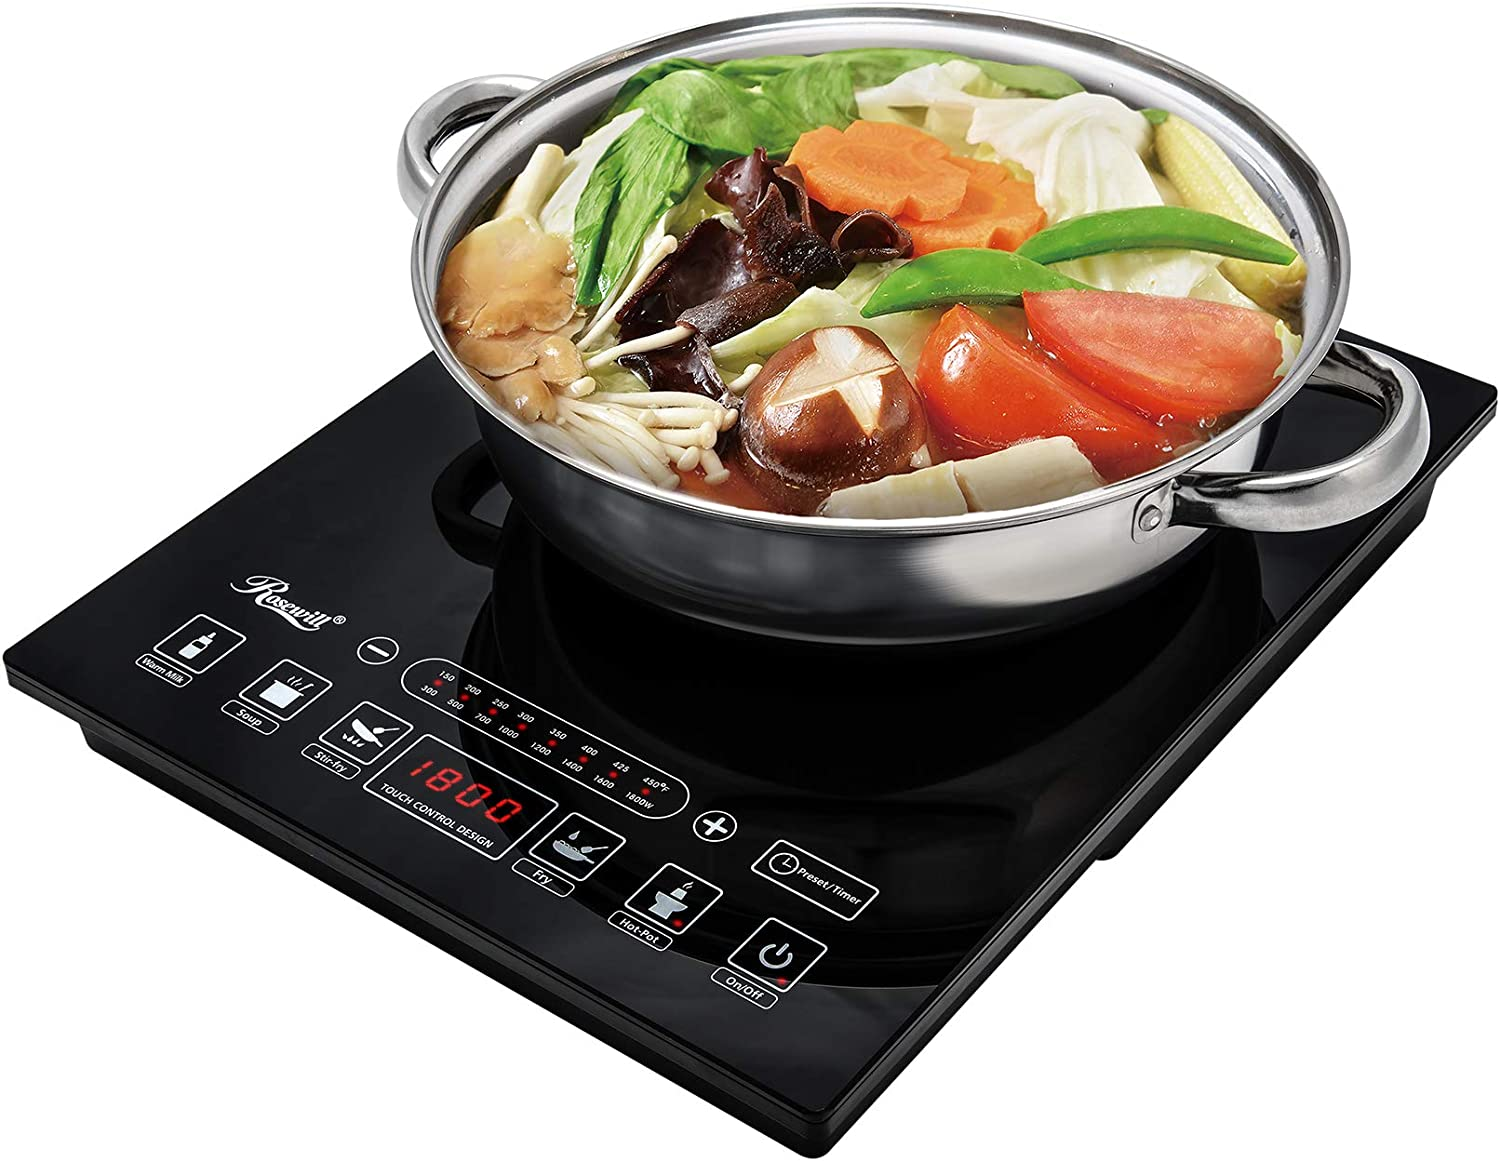 Rosewill Induction Cooker 1800 Watt, 5 Pre-Programmed Induction Cooktop, Electric Burner with Stainless Steel Pot 10